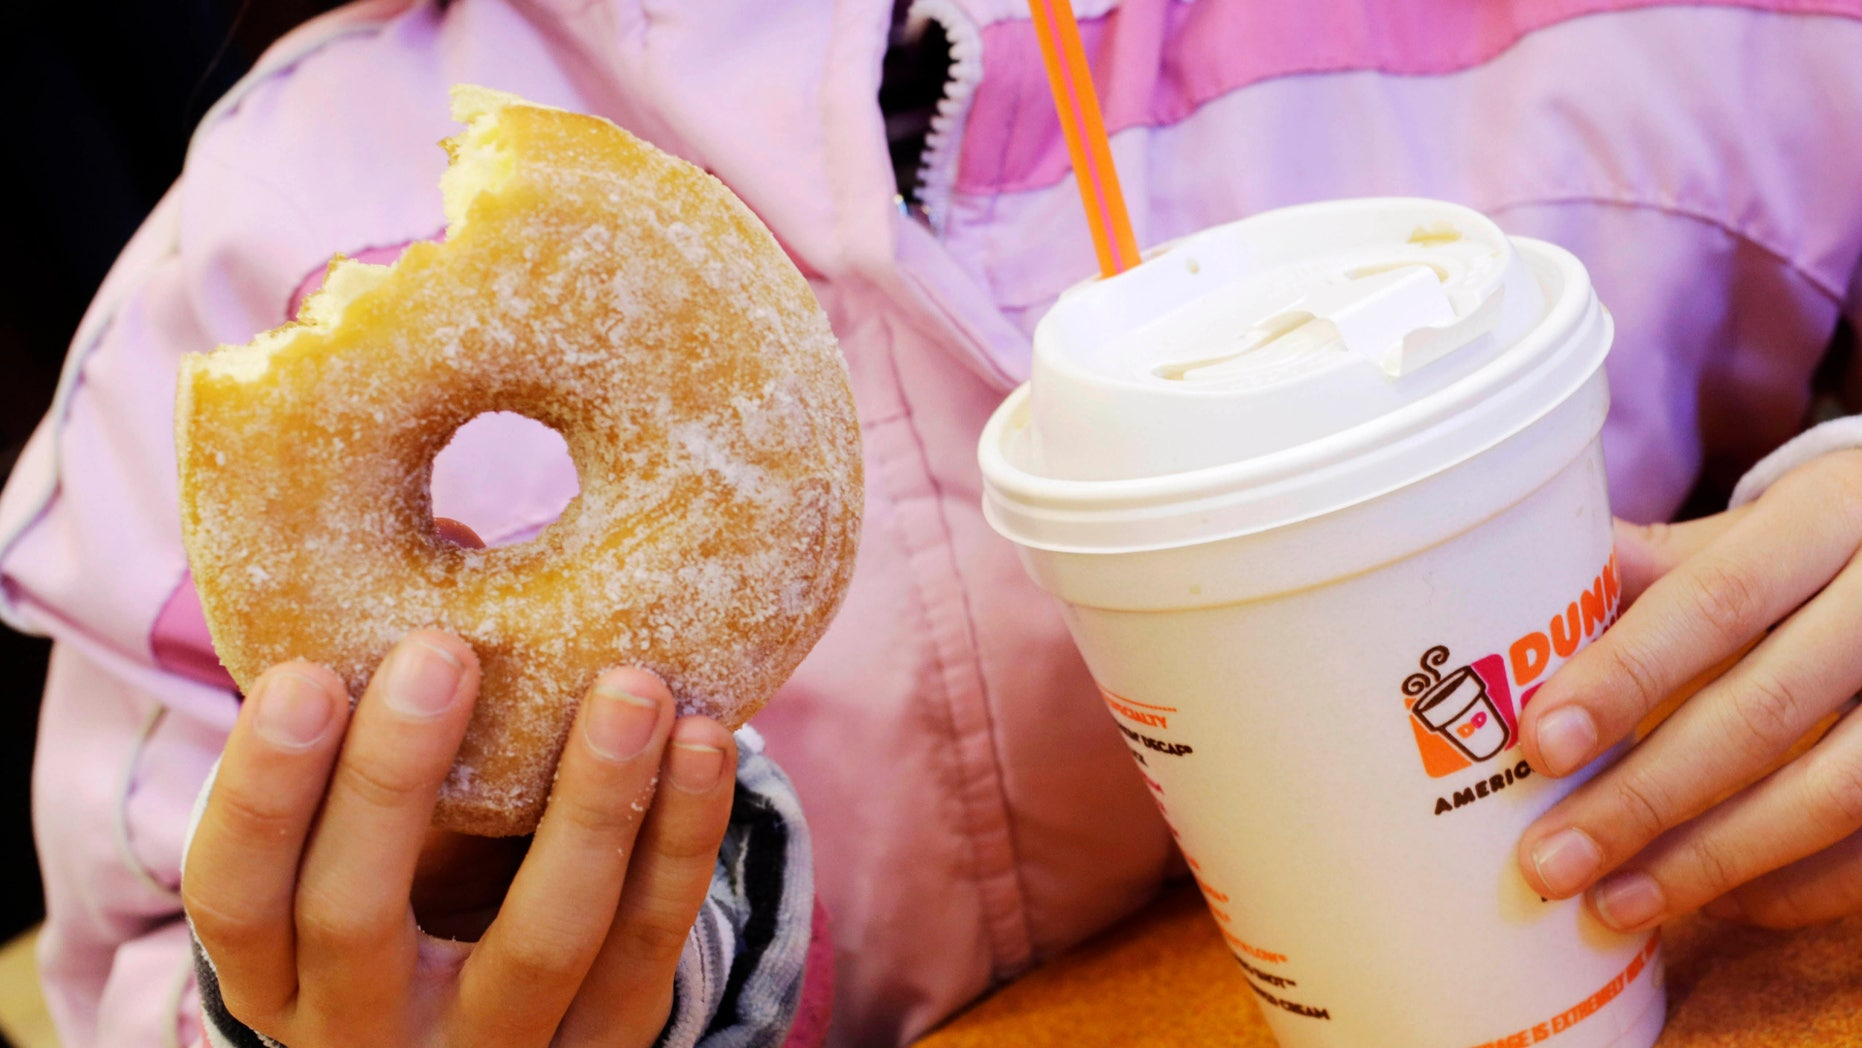 FILE - In this Feb. 14, 2013 file photo, a girl holds a beverage, served in a foam cup, and a donut at a Dunkin' Donuts in New York. The New York City Council's sanitation committee has a hearing set for Monday, Nov. 25, 2013, on proposals to ban plastic-foam food containers or explore recycling them. (AP Photo/Mark Lennihan, File)